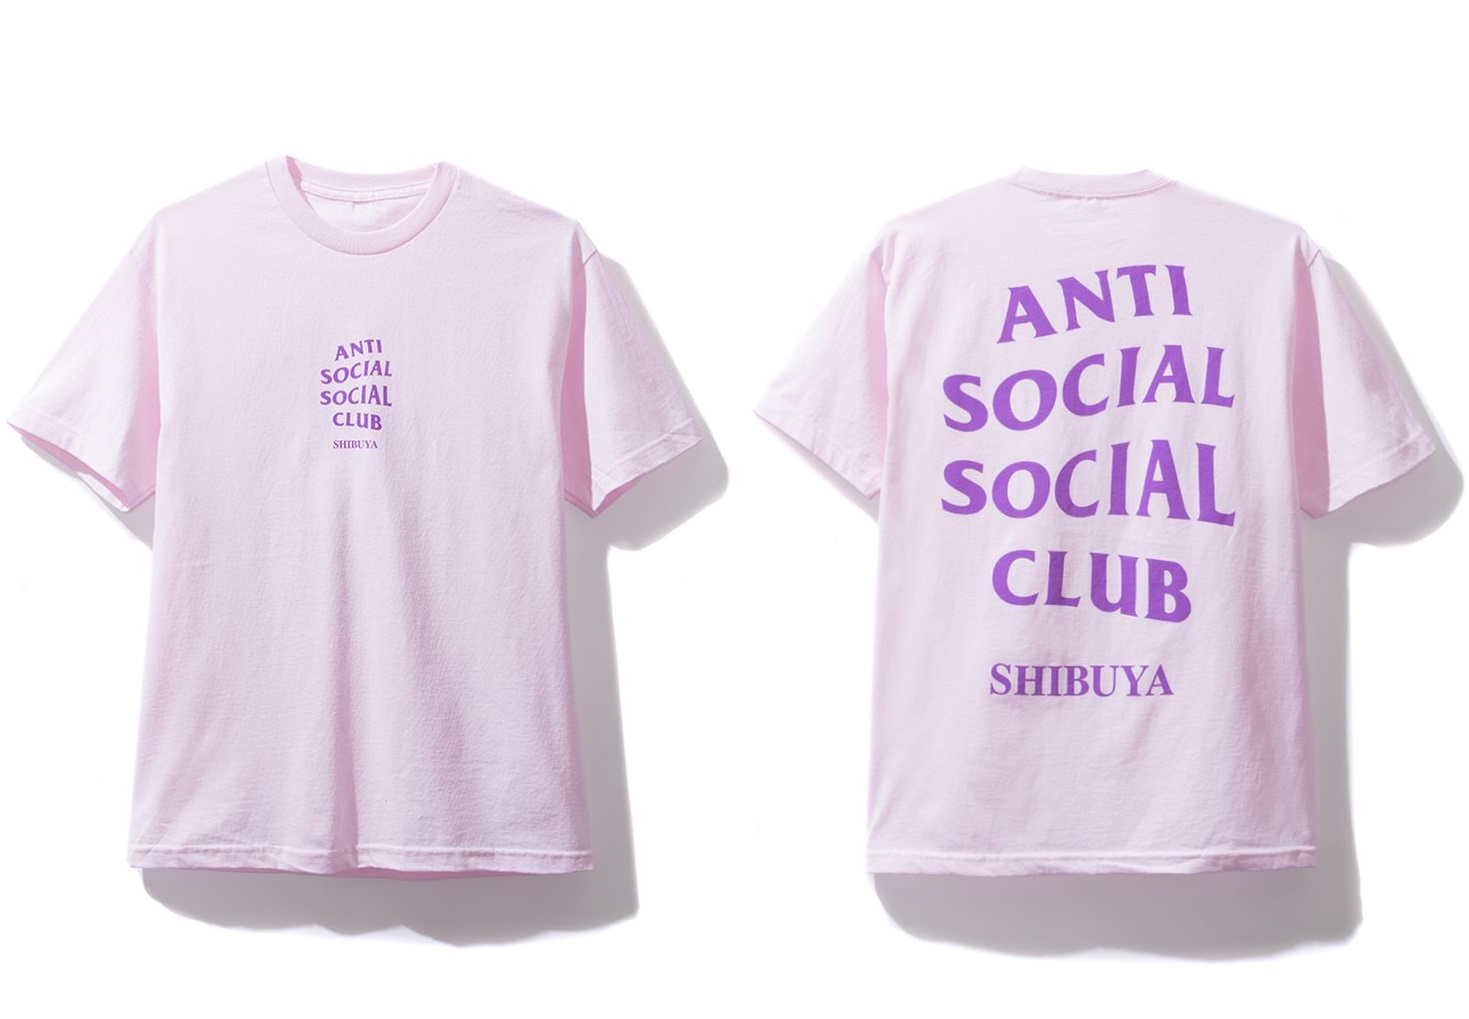 3a358f451607 Anti Social Social Club ×. DS Anti Social Social Club ASSC Purple Logo  Shibuya Pink Tee in hand Bape Supreme kith